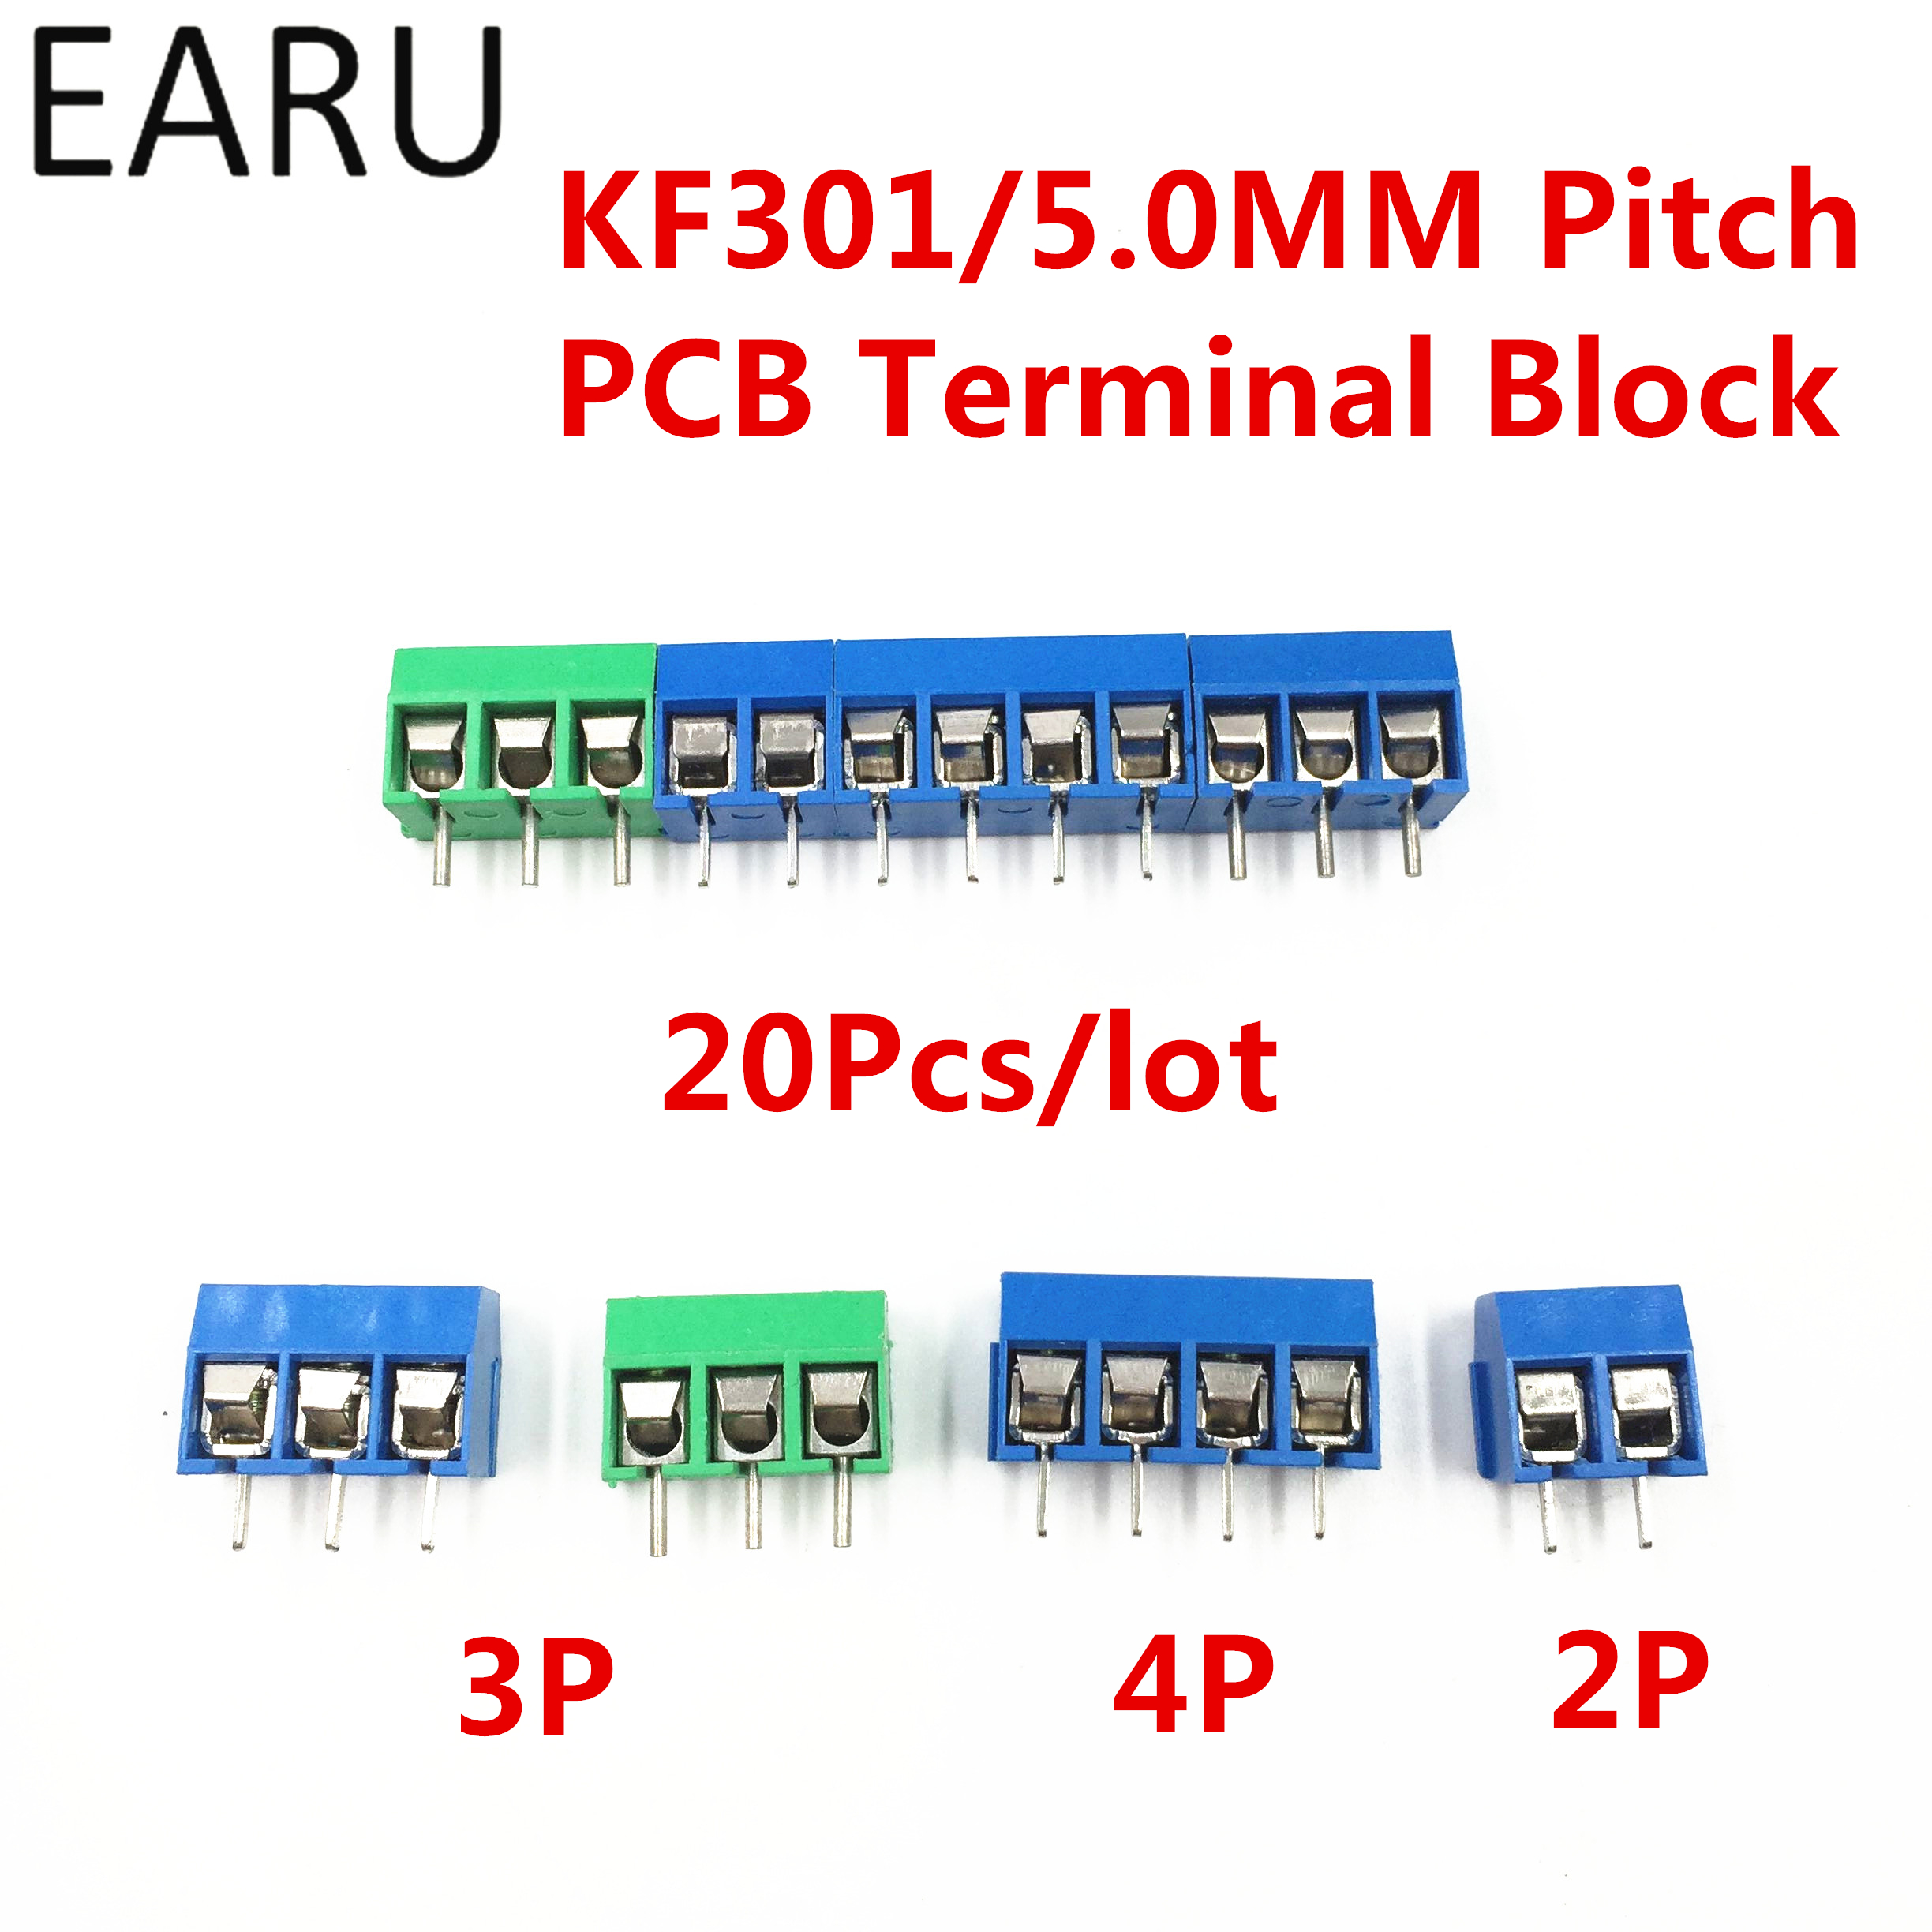 20Pcs/lot KF301-5.0-2P KF301-3P KF301-4P Pitch 5.0mm Straight Pin 2P 3P 4P Screw PCB Terminal Block Connector Blue Green free shipping one lot 50pcs 3 pin way 3 81mm pitch terminal block connector pcb mounted 1v 3 81 3p